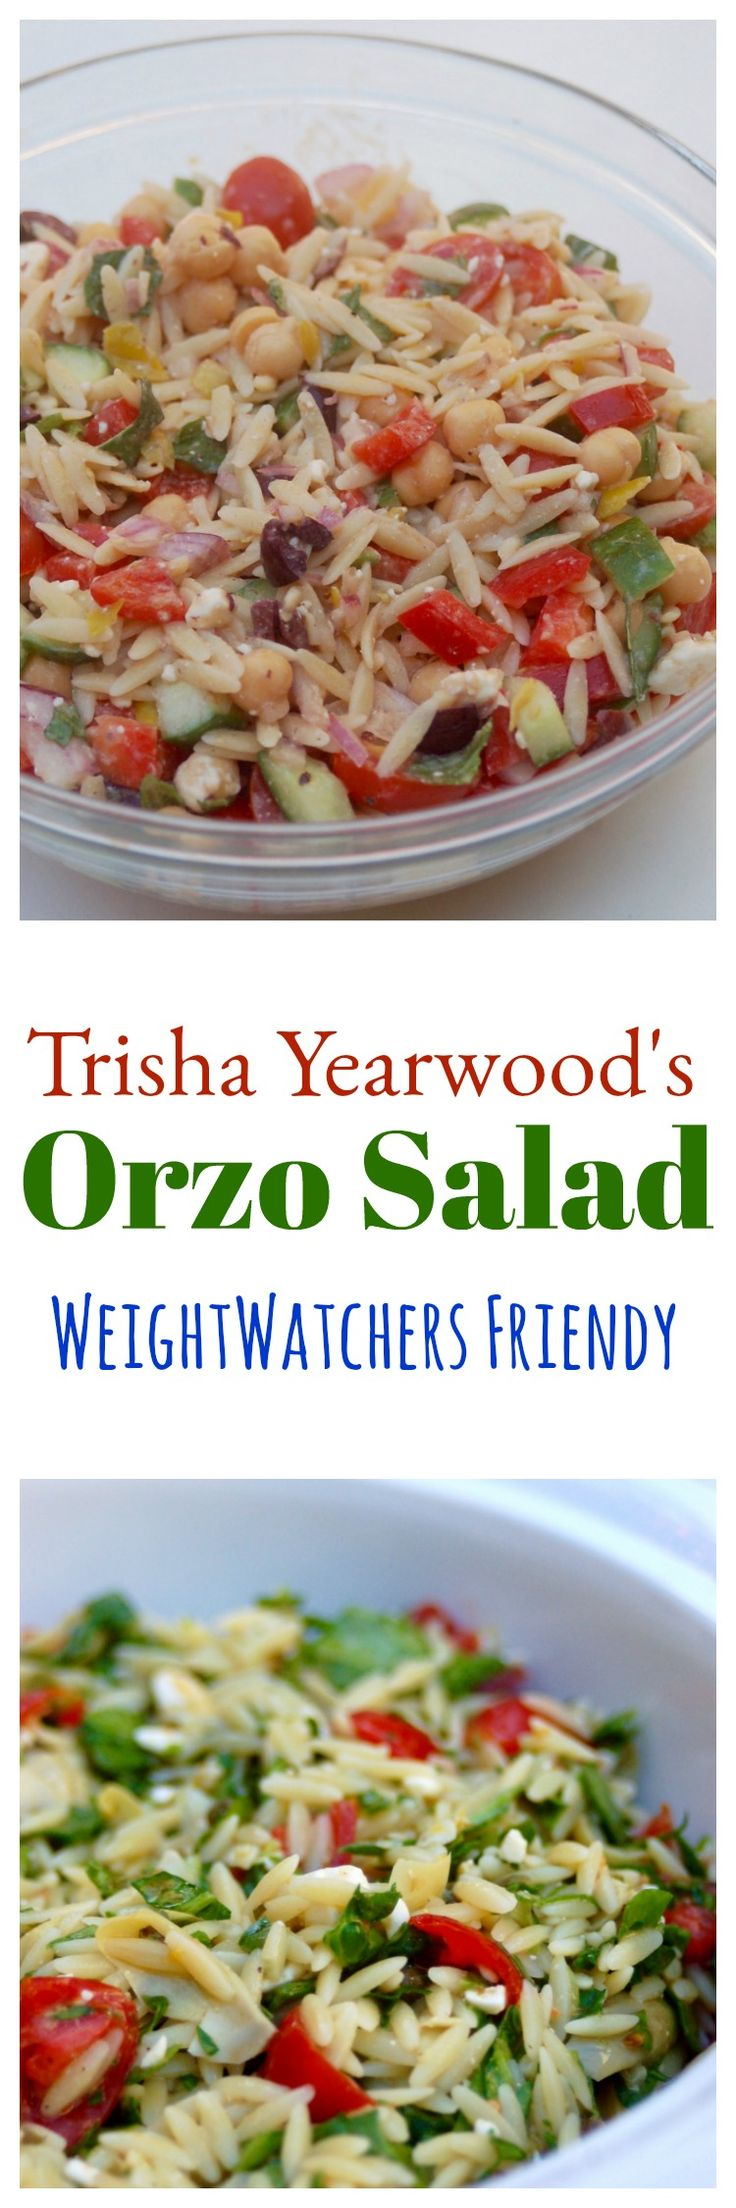 Trisha Yearwood's Orzo Salad made Weight Watchers friendly - so easy and delicious!